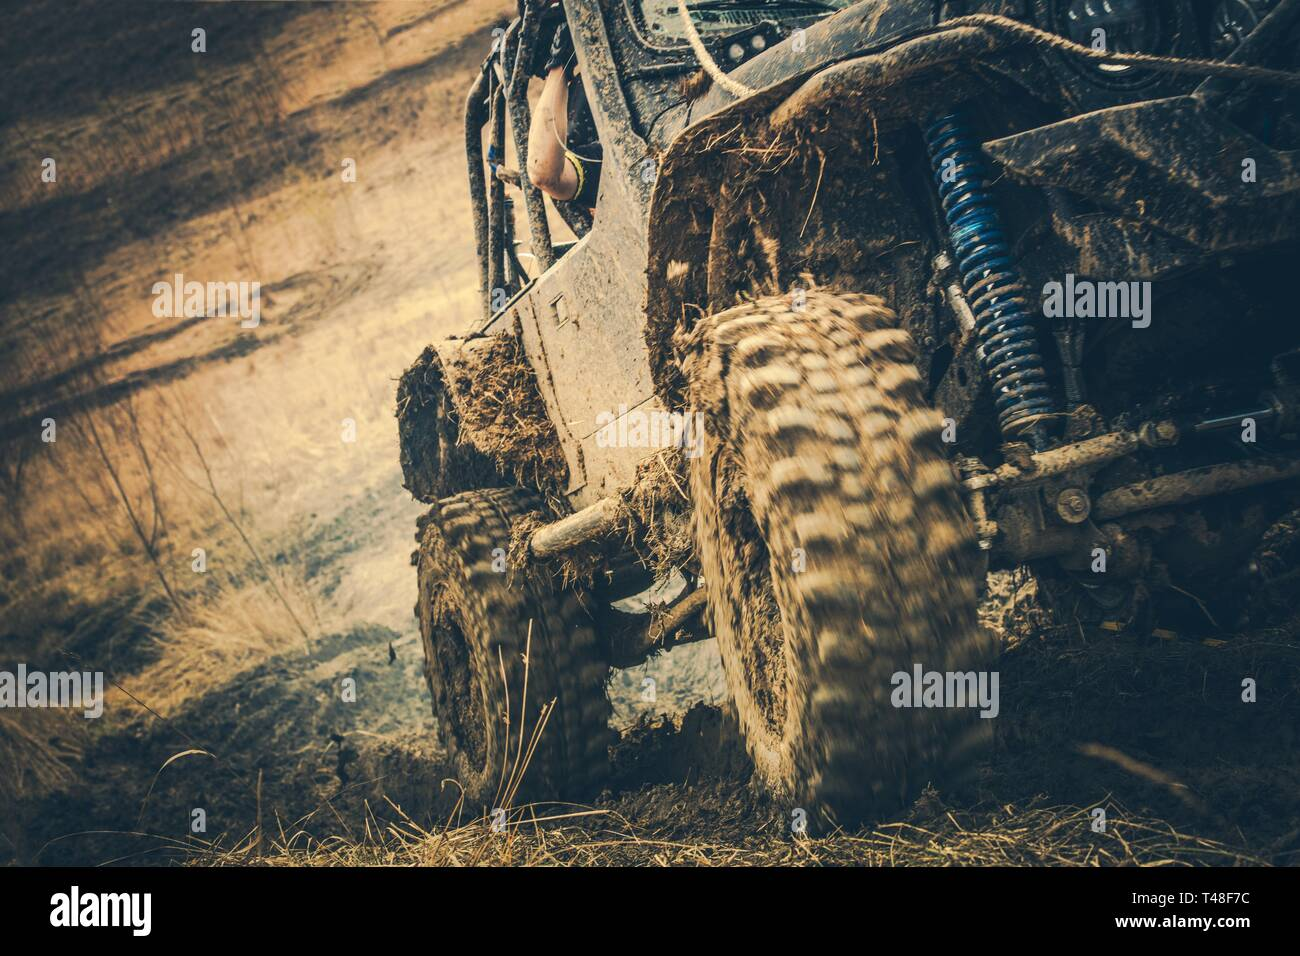 Dirty Off Road Trail Drive. Powerful Sport Utility Vehicle in the Mud. Motorsport Theme. - Stock Image